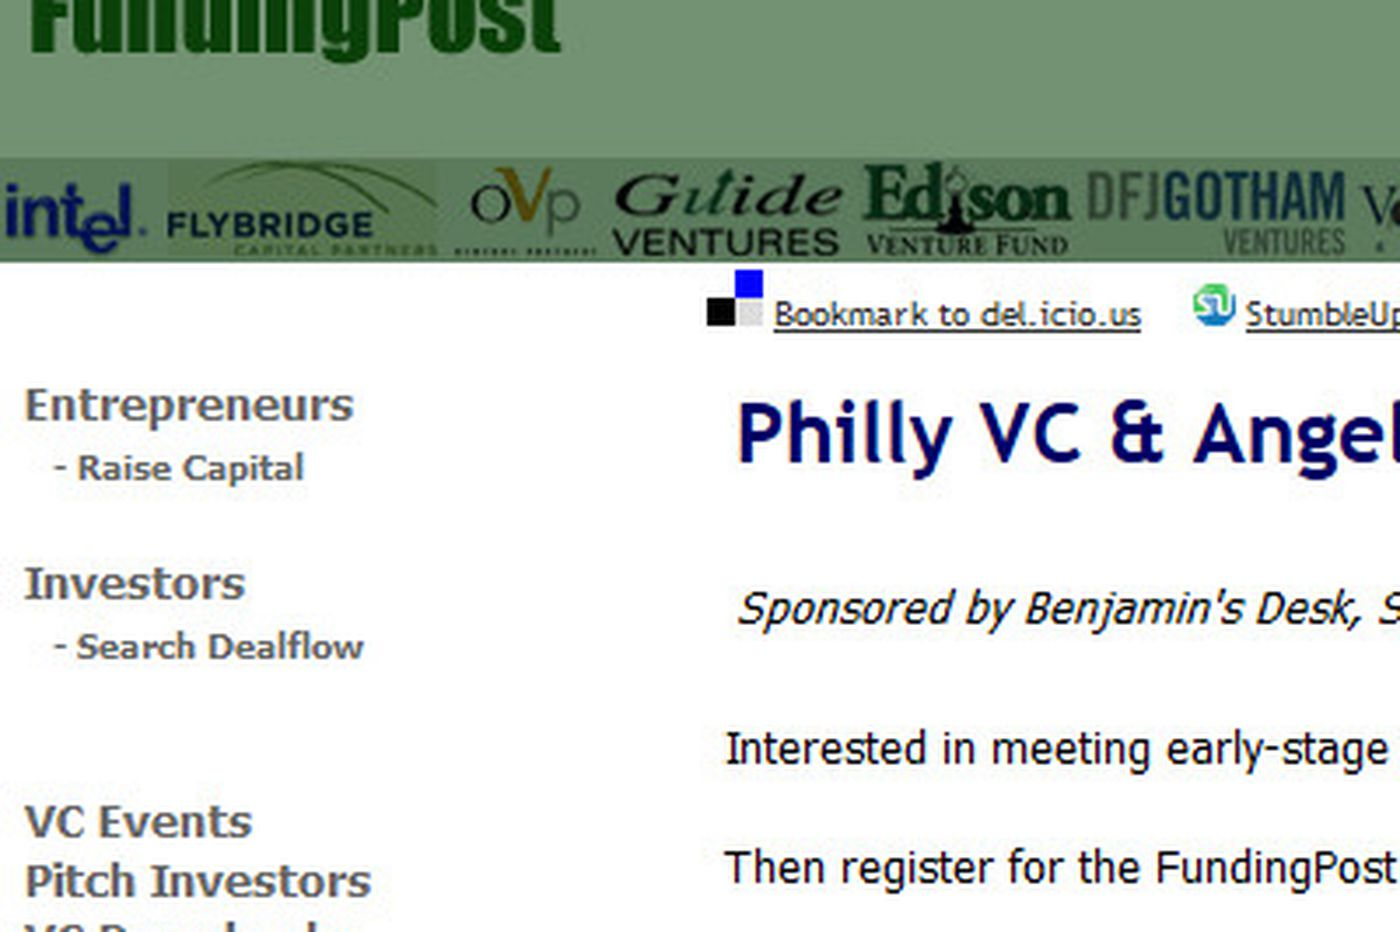 PhillyInc: Start-ups and venture capitalists will gather this week in Philadelphia area